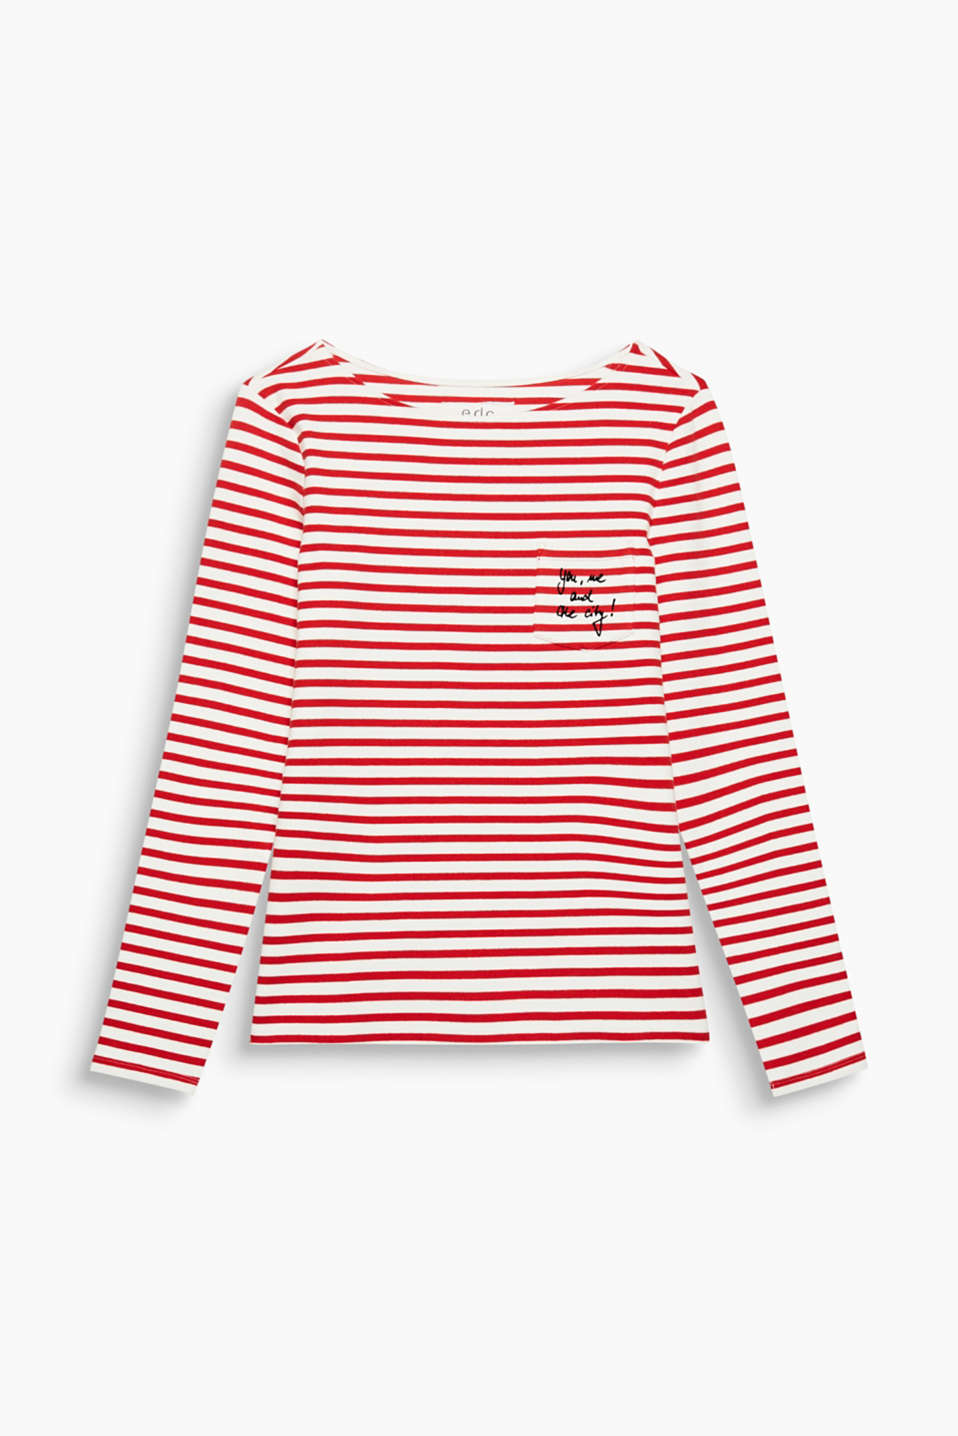 The comfortable added stretch and patch breast pocket with a statement makes this long sleeve T-shirt unique